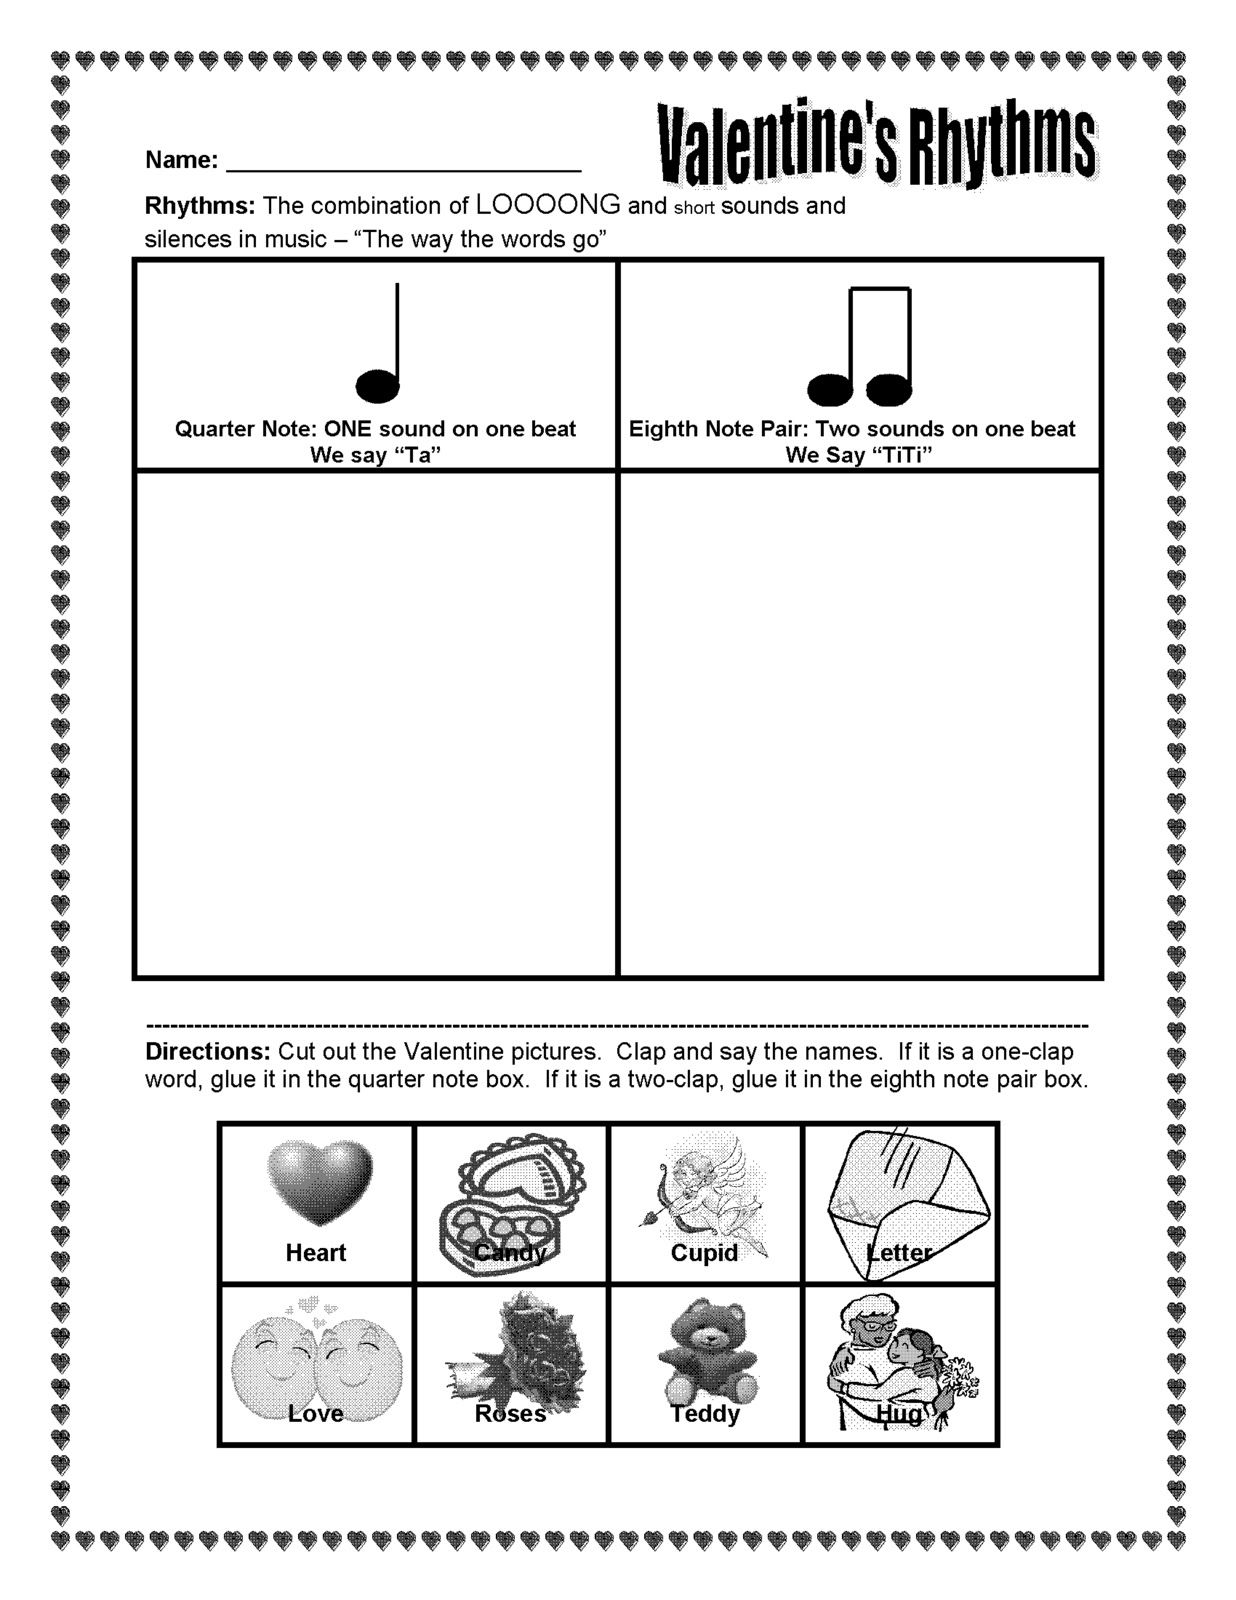 Valentine Song Activity Tif 1 236 1 600 Pixels